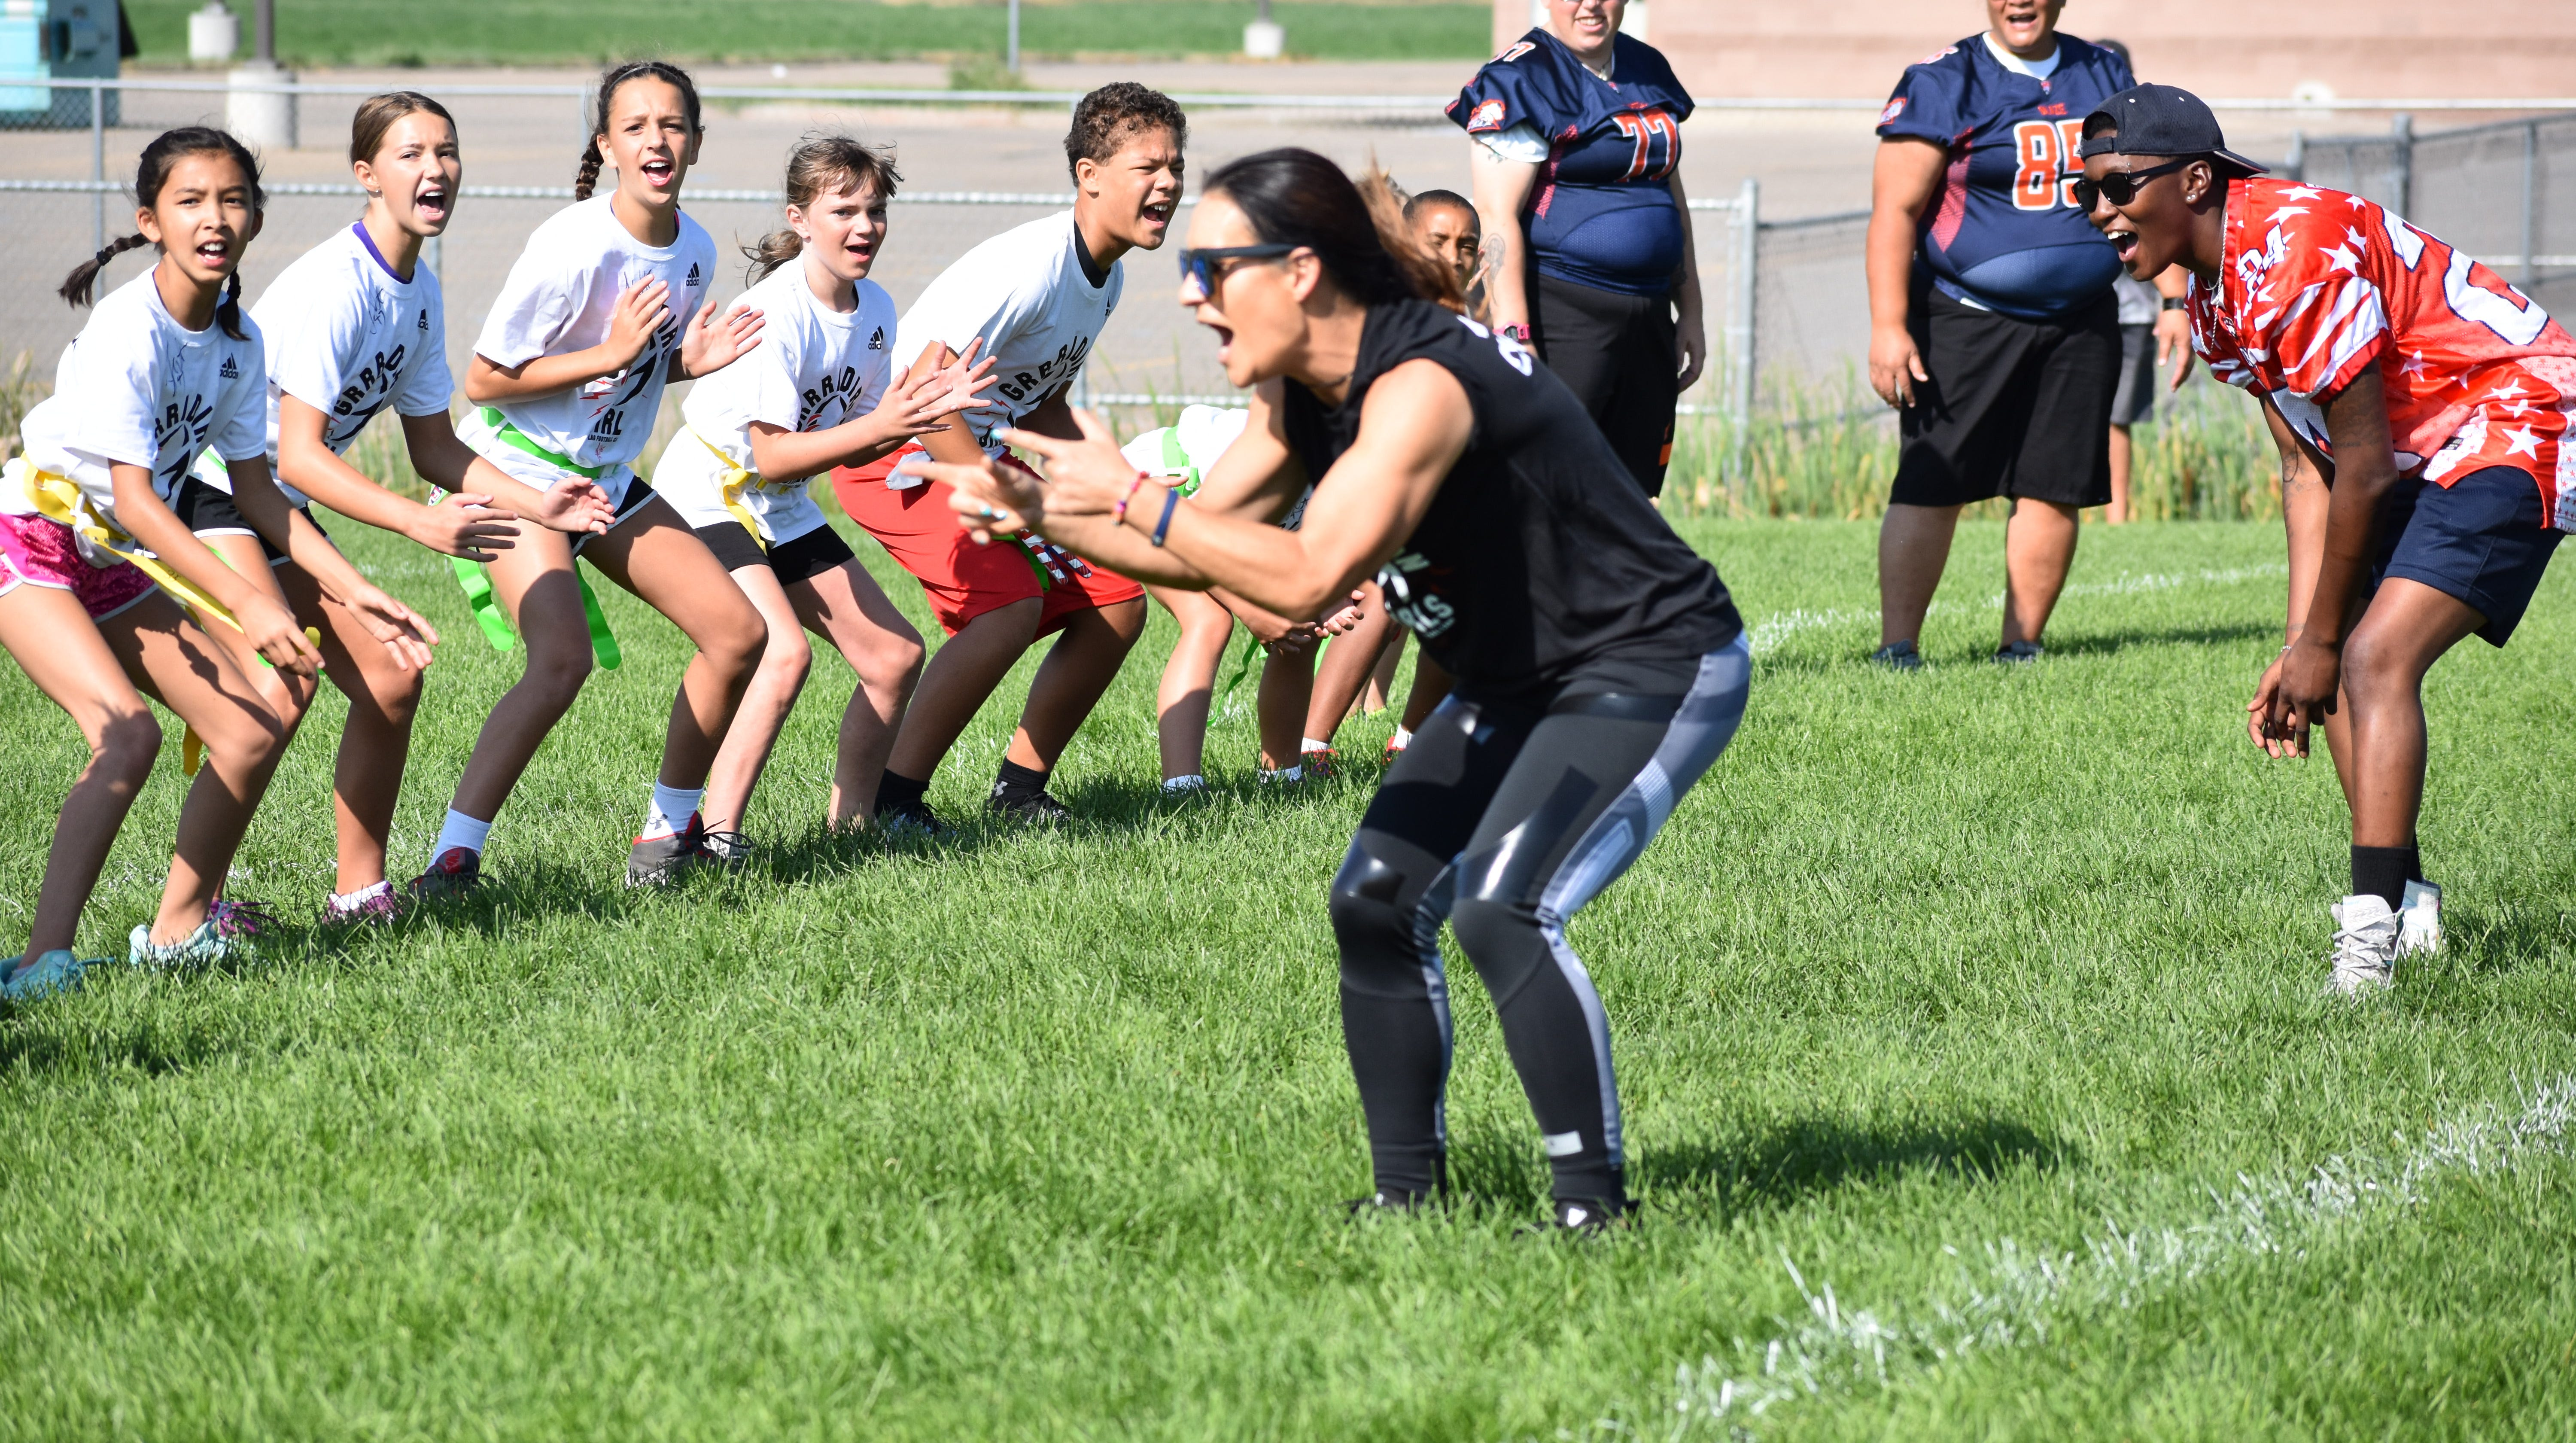 Local girls learn football skills at camp run by NFL's first female assistant coach